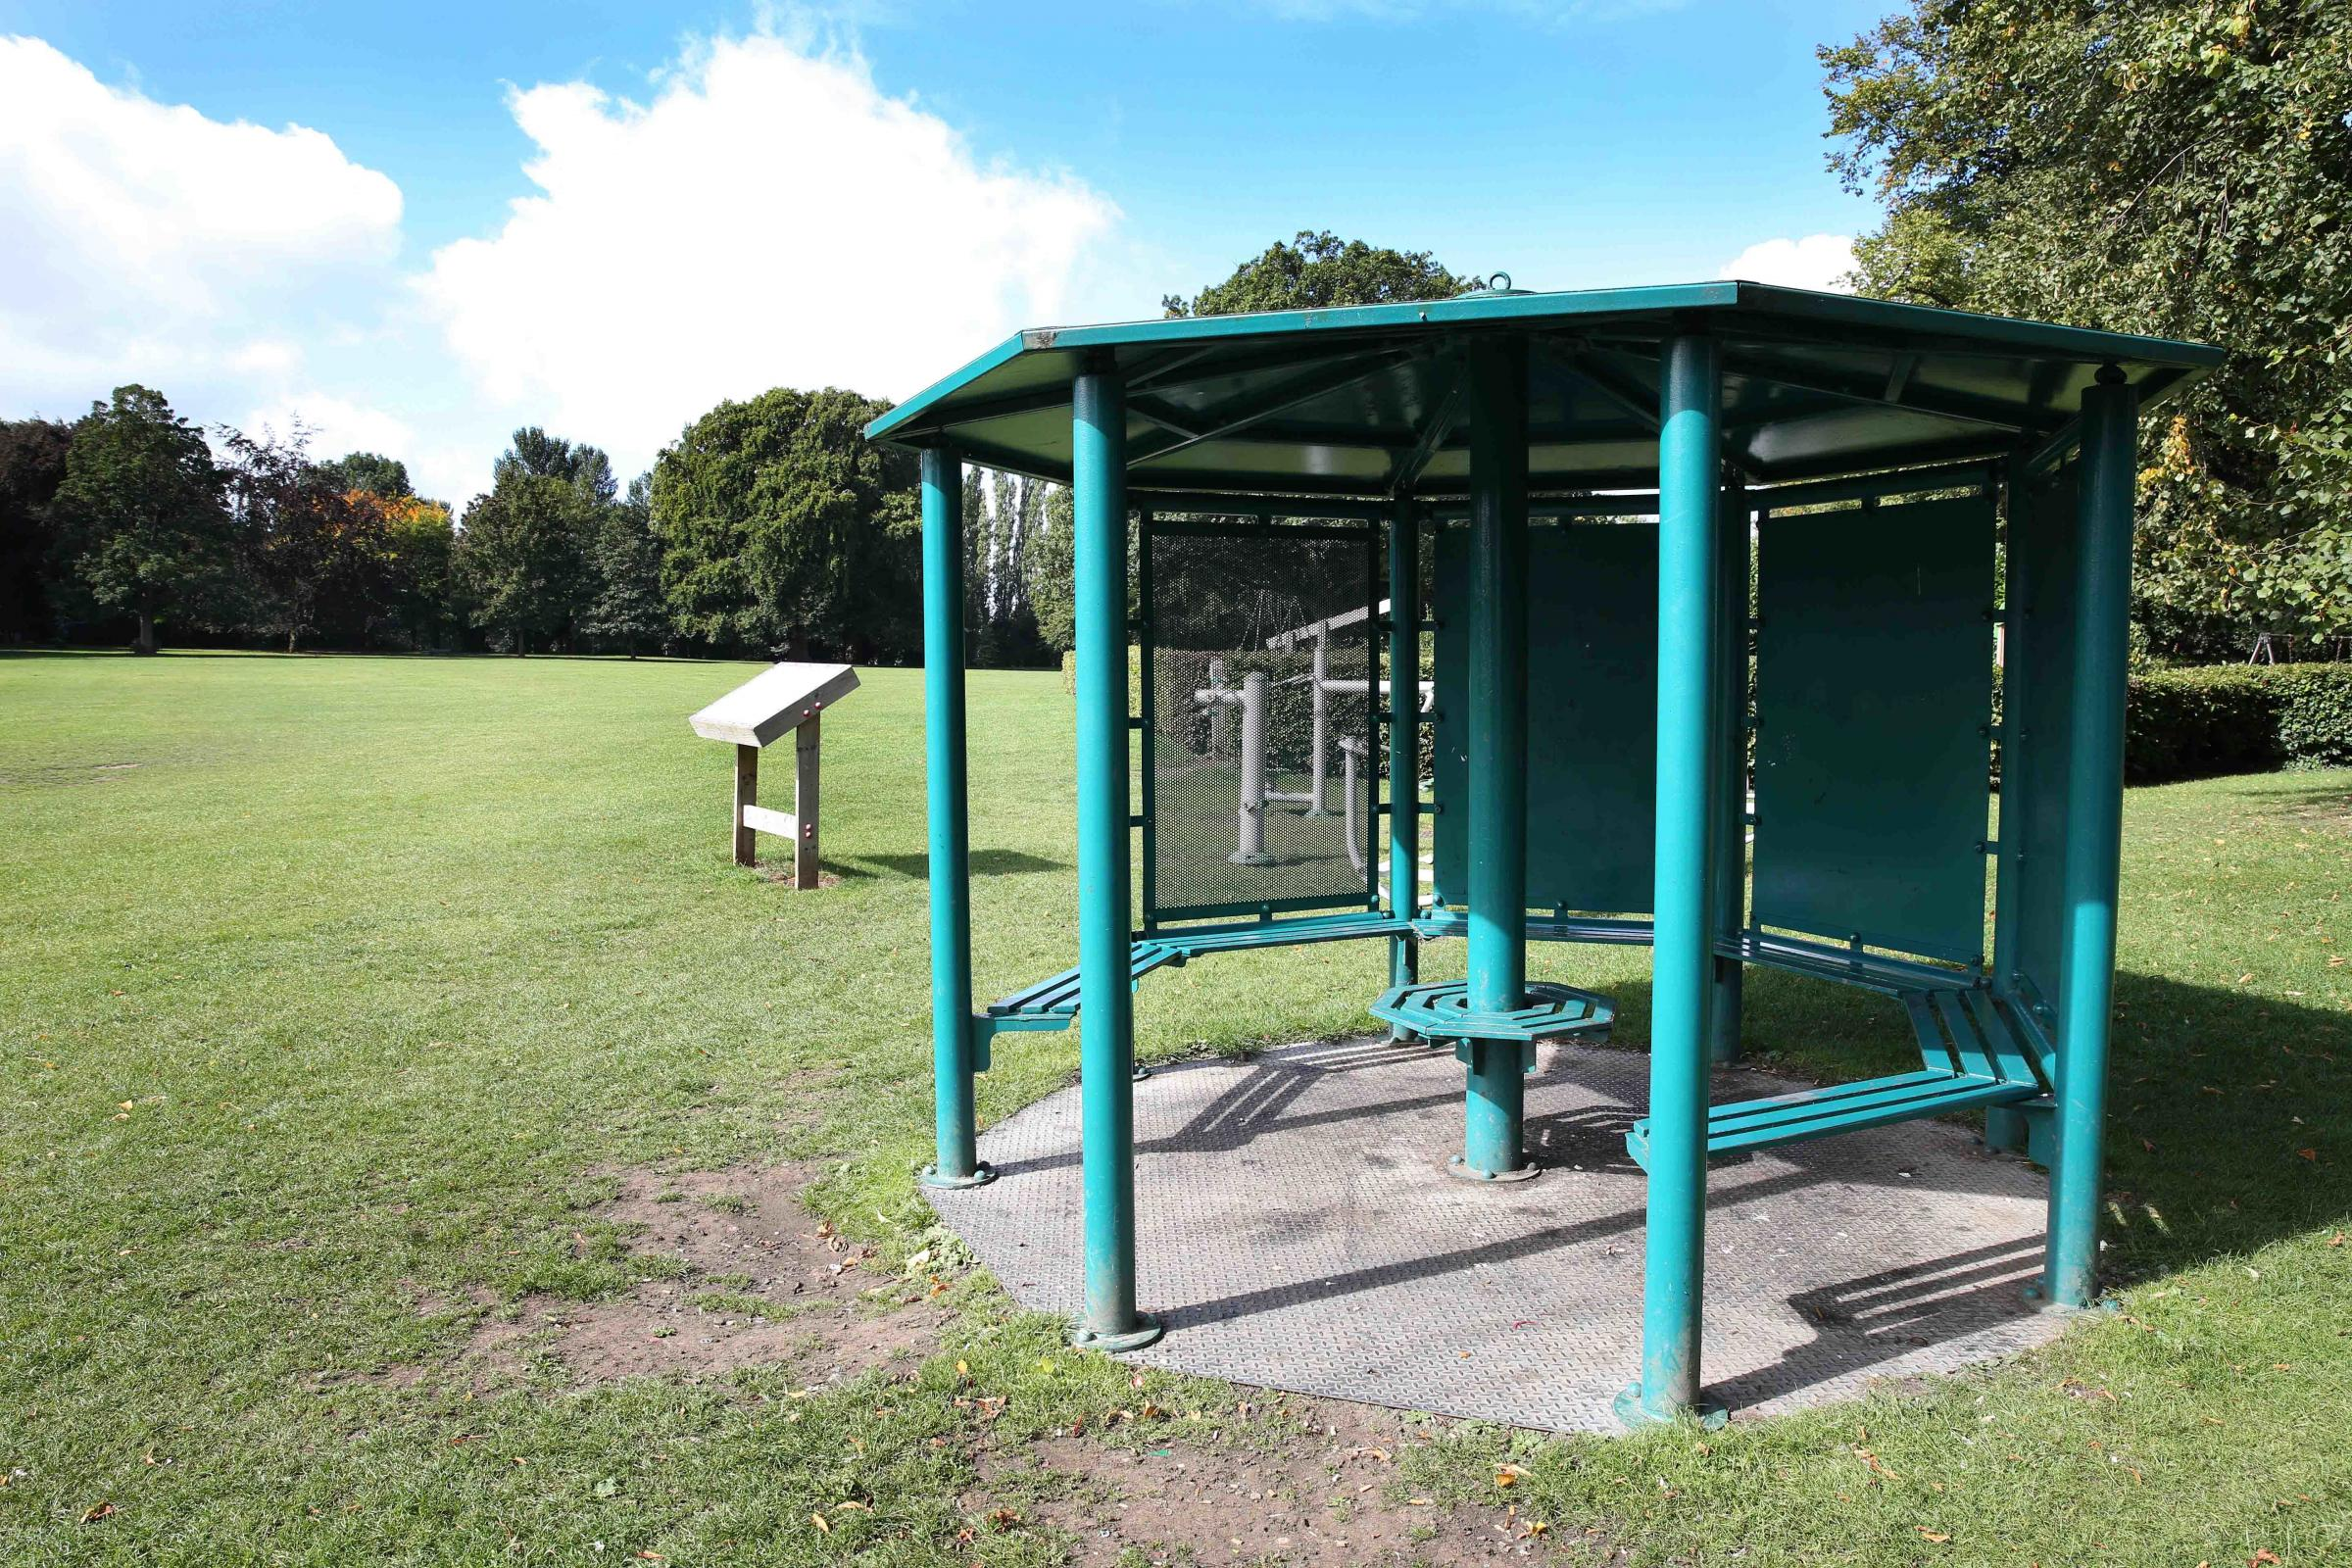 BEDALE:The shelter in Bedale park where there has been anti-social behaviour. Picture: Richard Doughty Photography